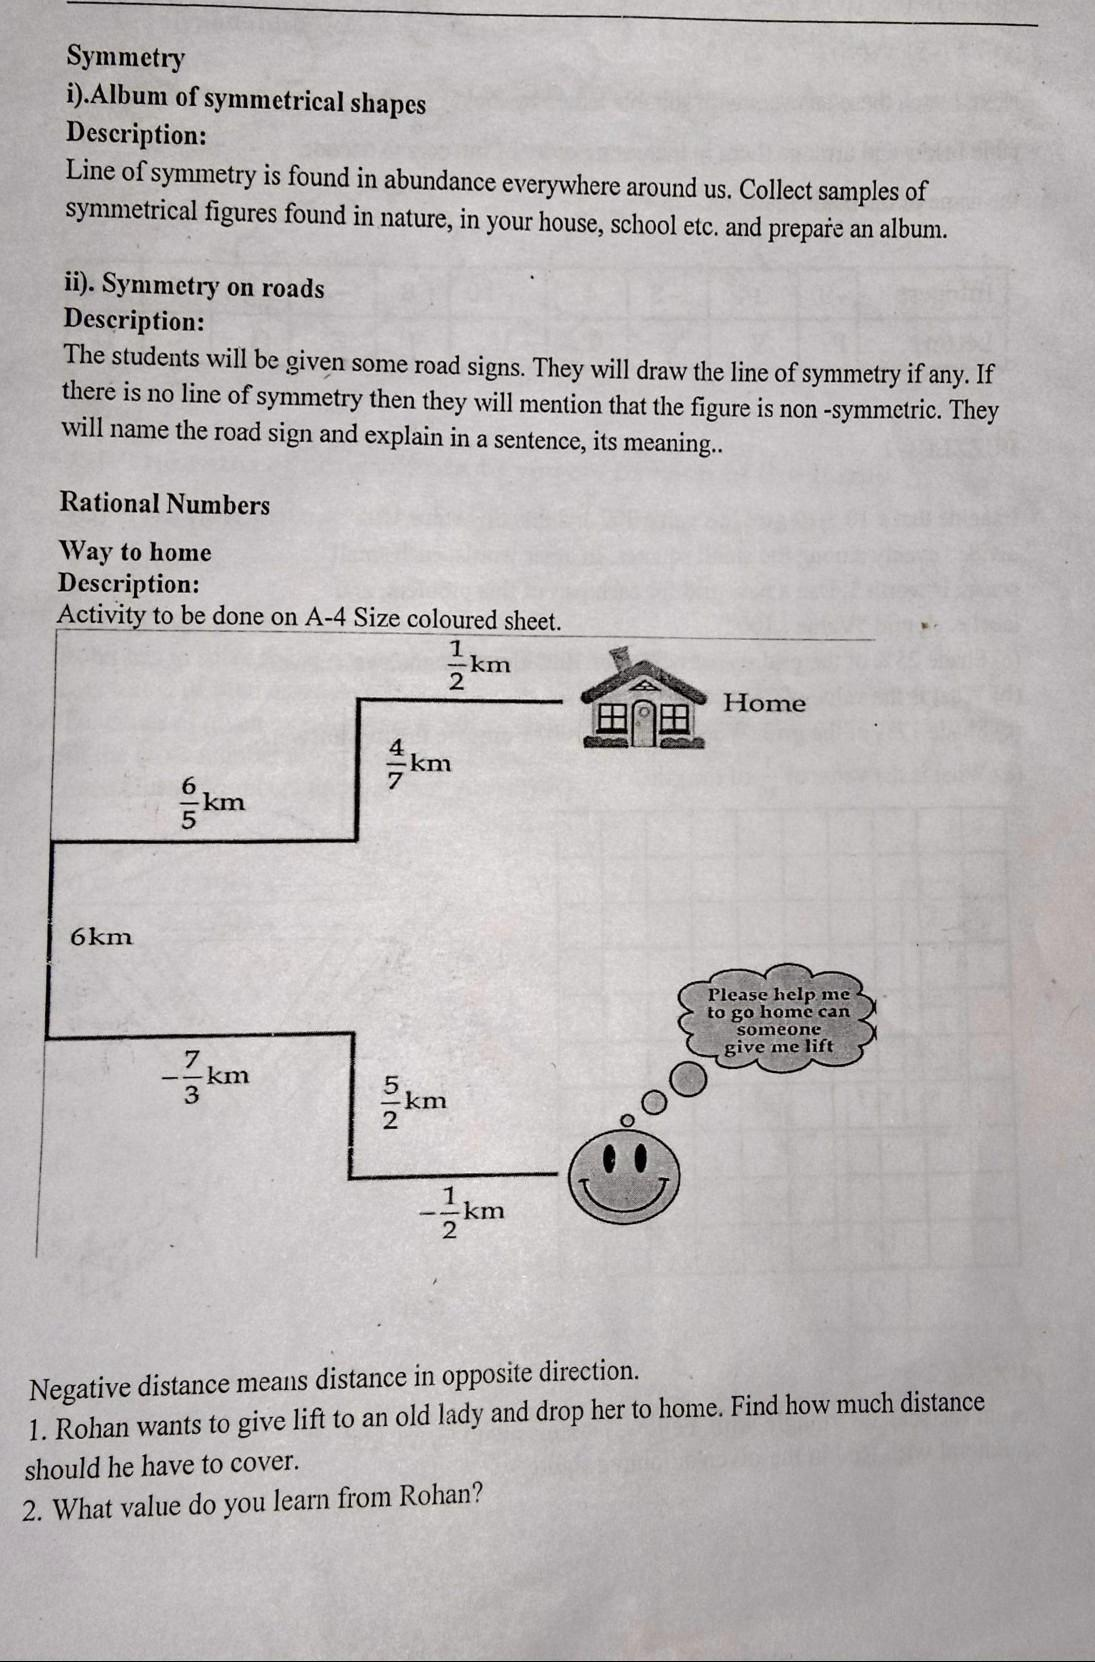 Please Help Me To Answer This Worksheet